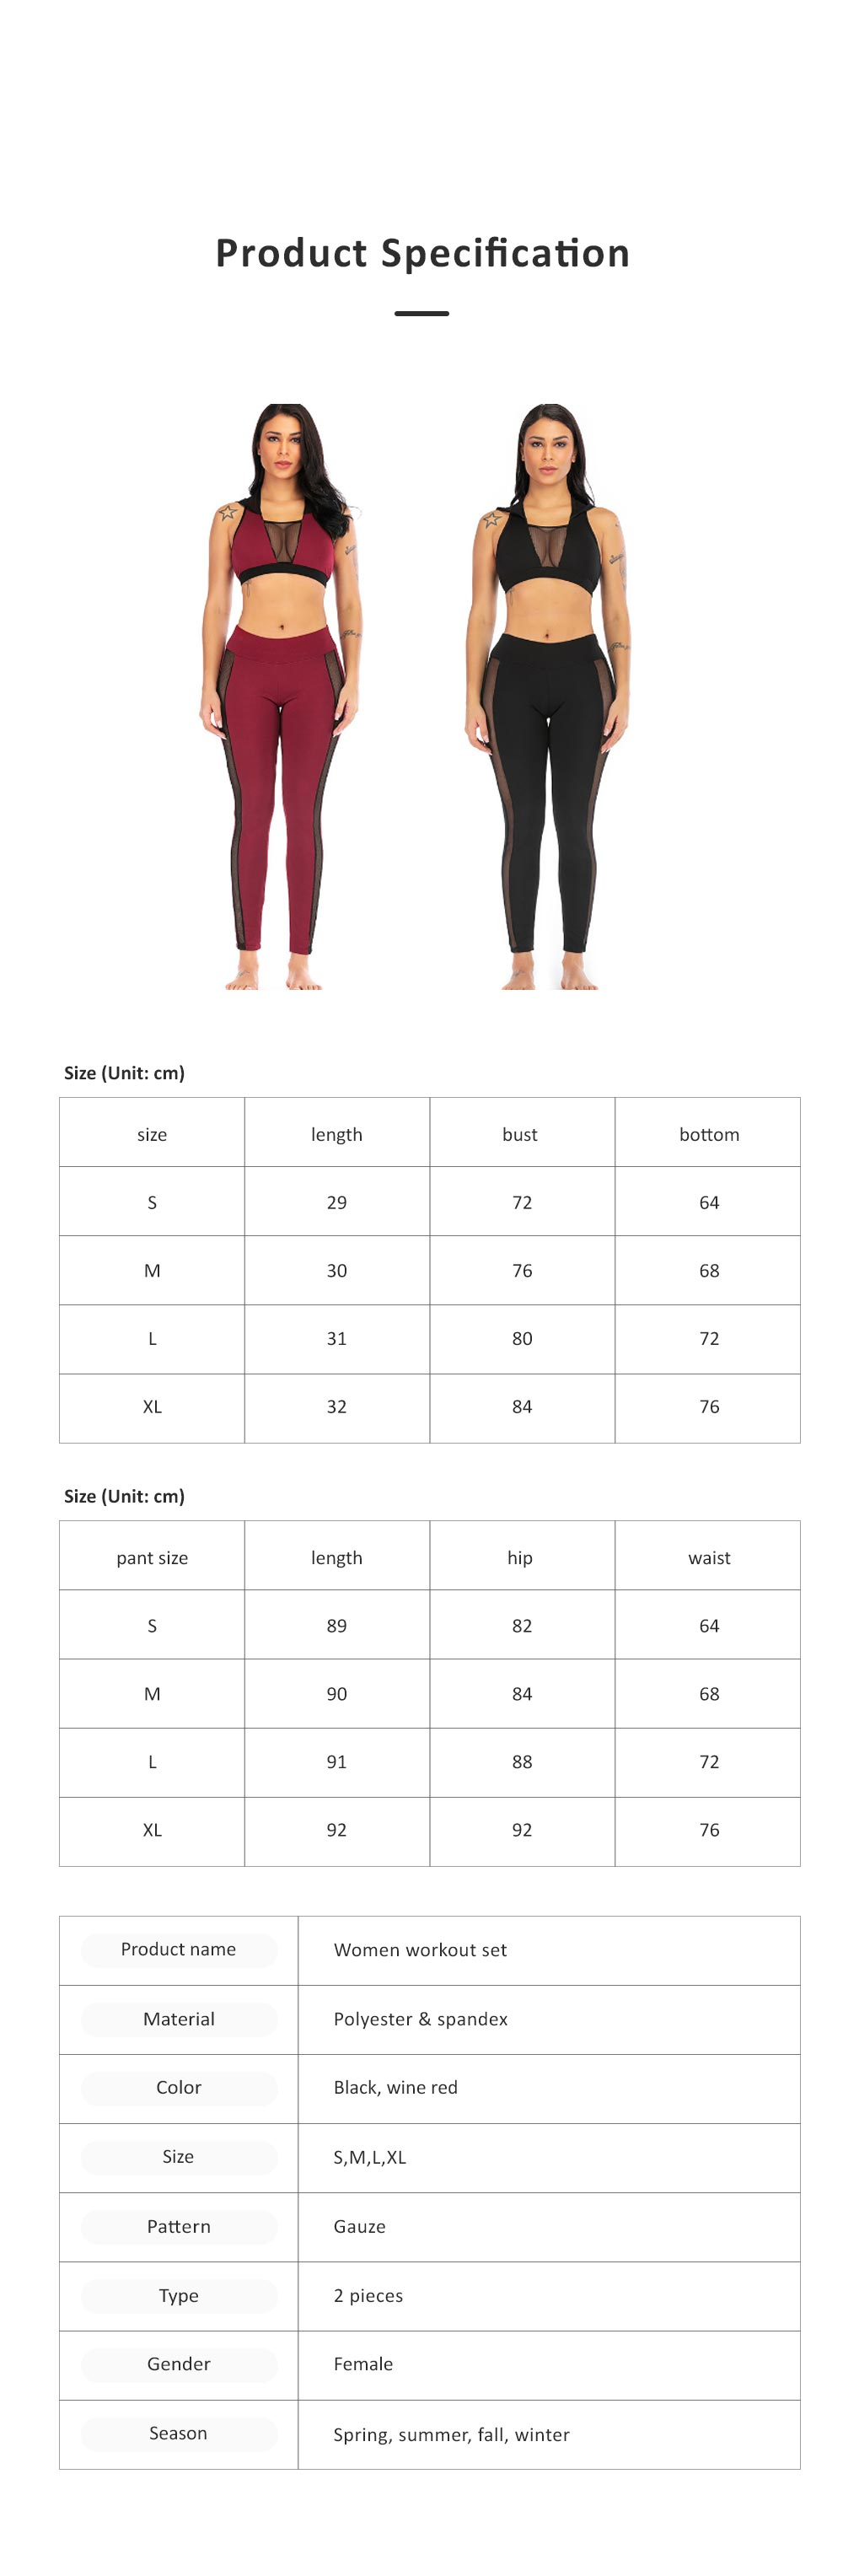 Women Jogging Sport Suit Workout Set Gauze Splicing Stretchy Comfortable 2 Pieces Suits Breathing High Waist Pant & Top Athletic Outfit 6